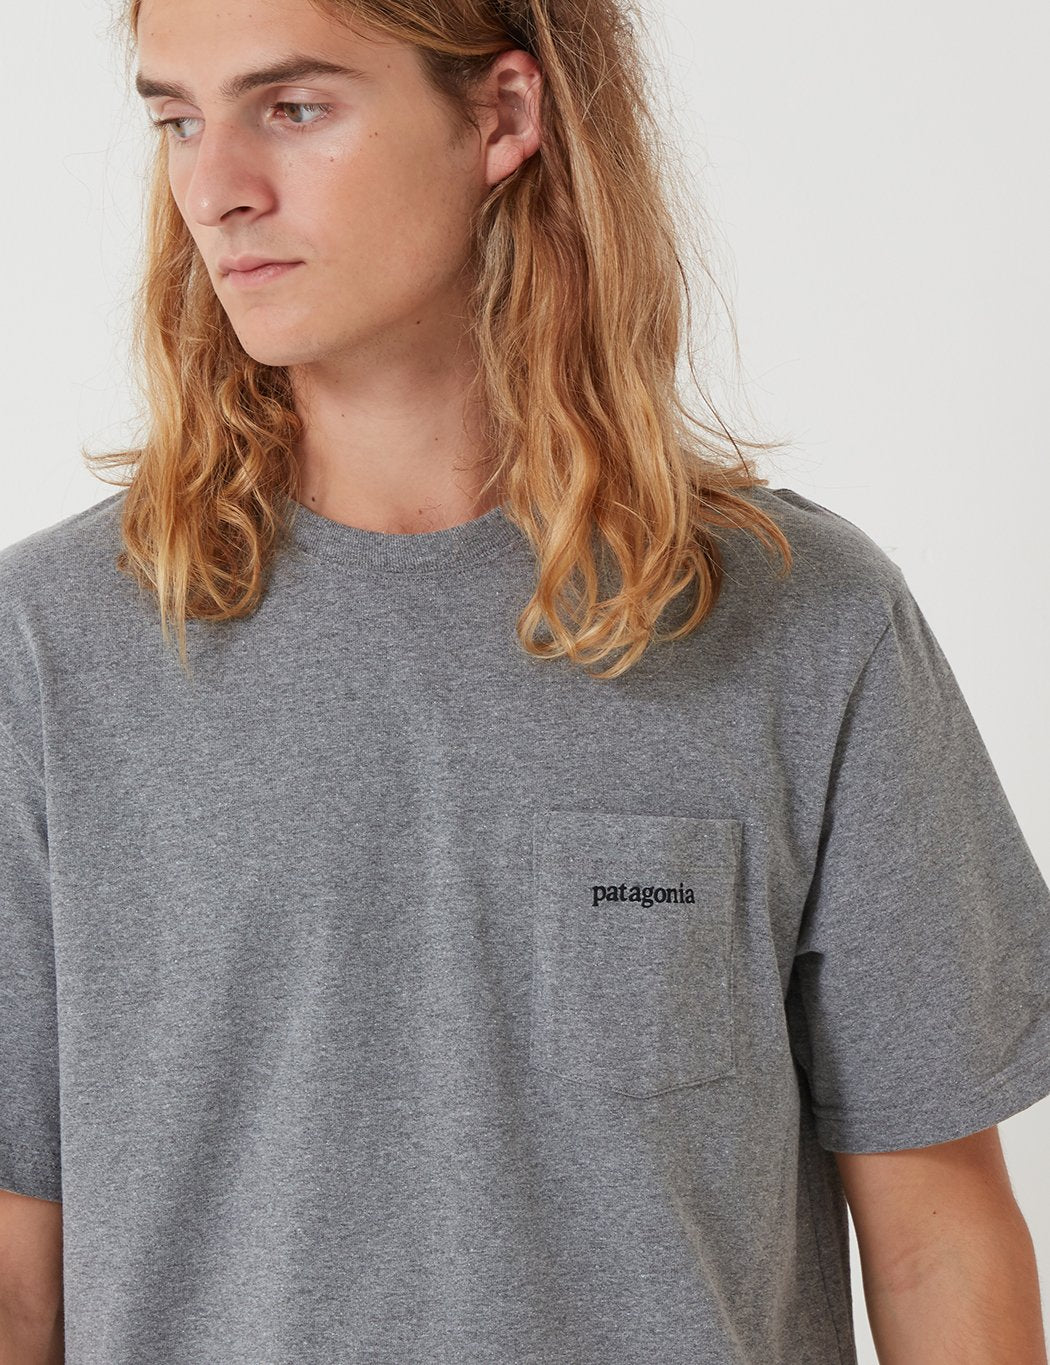 Patagonia Linie Ridge Logo-Tasche Responsibili-T T-Shirt - Gravel Heather Grey